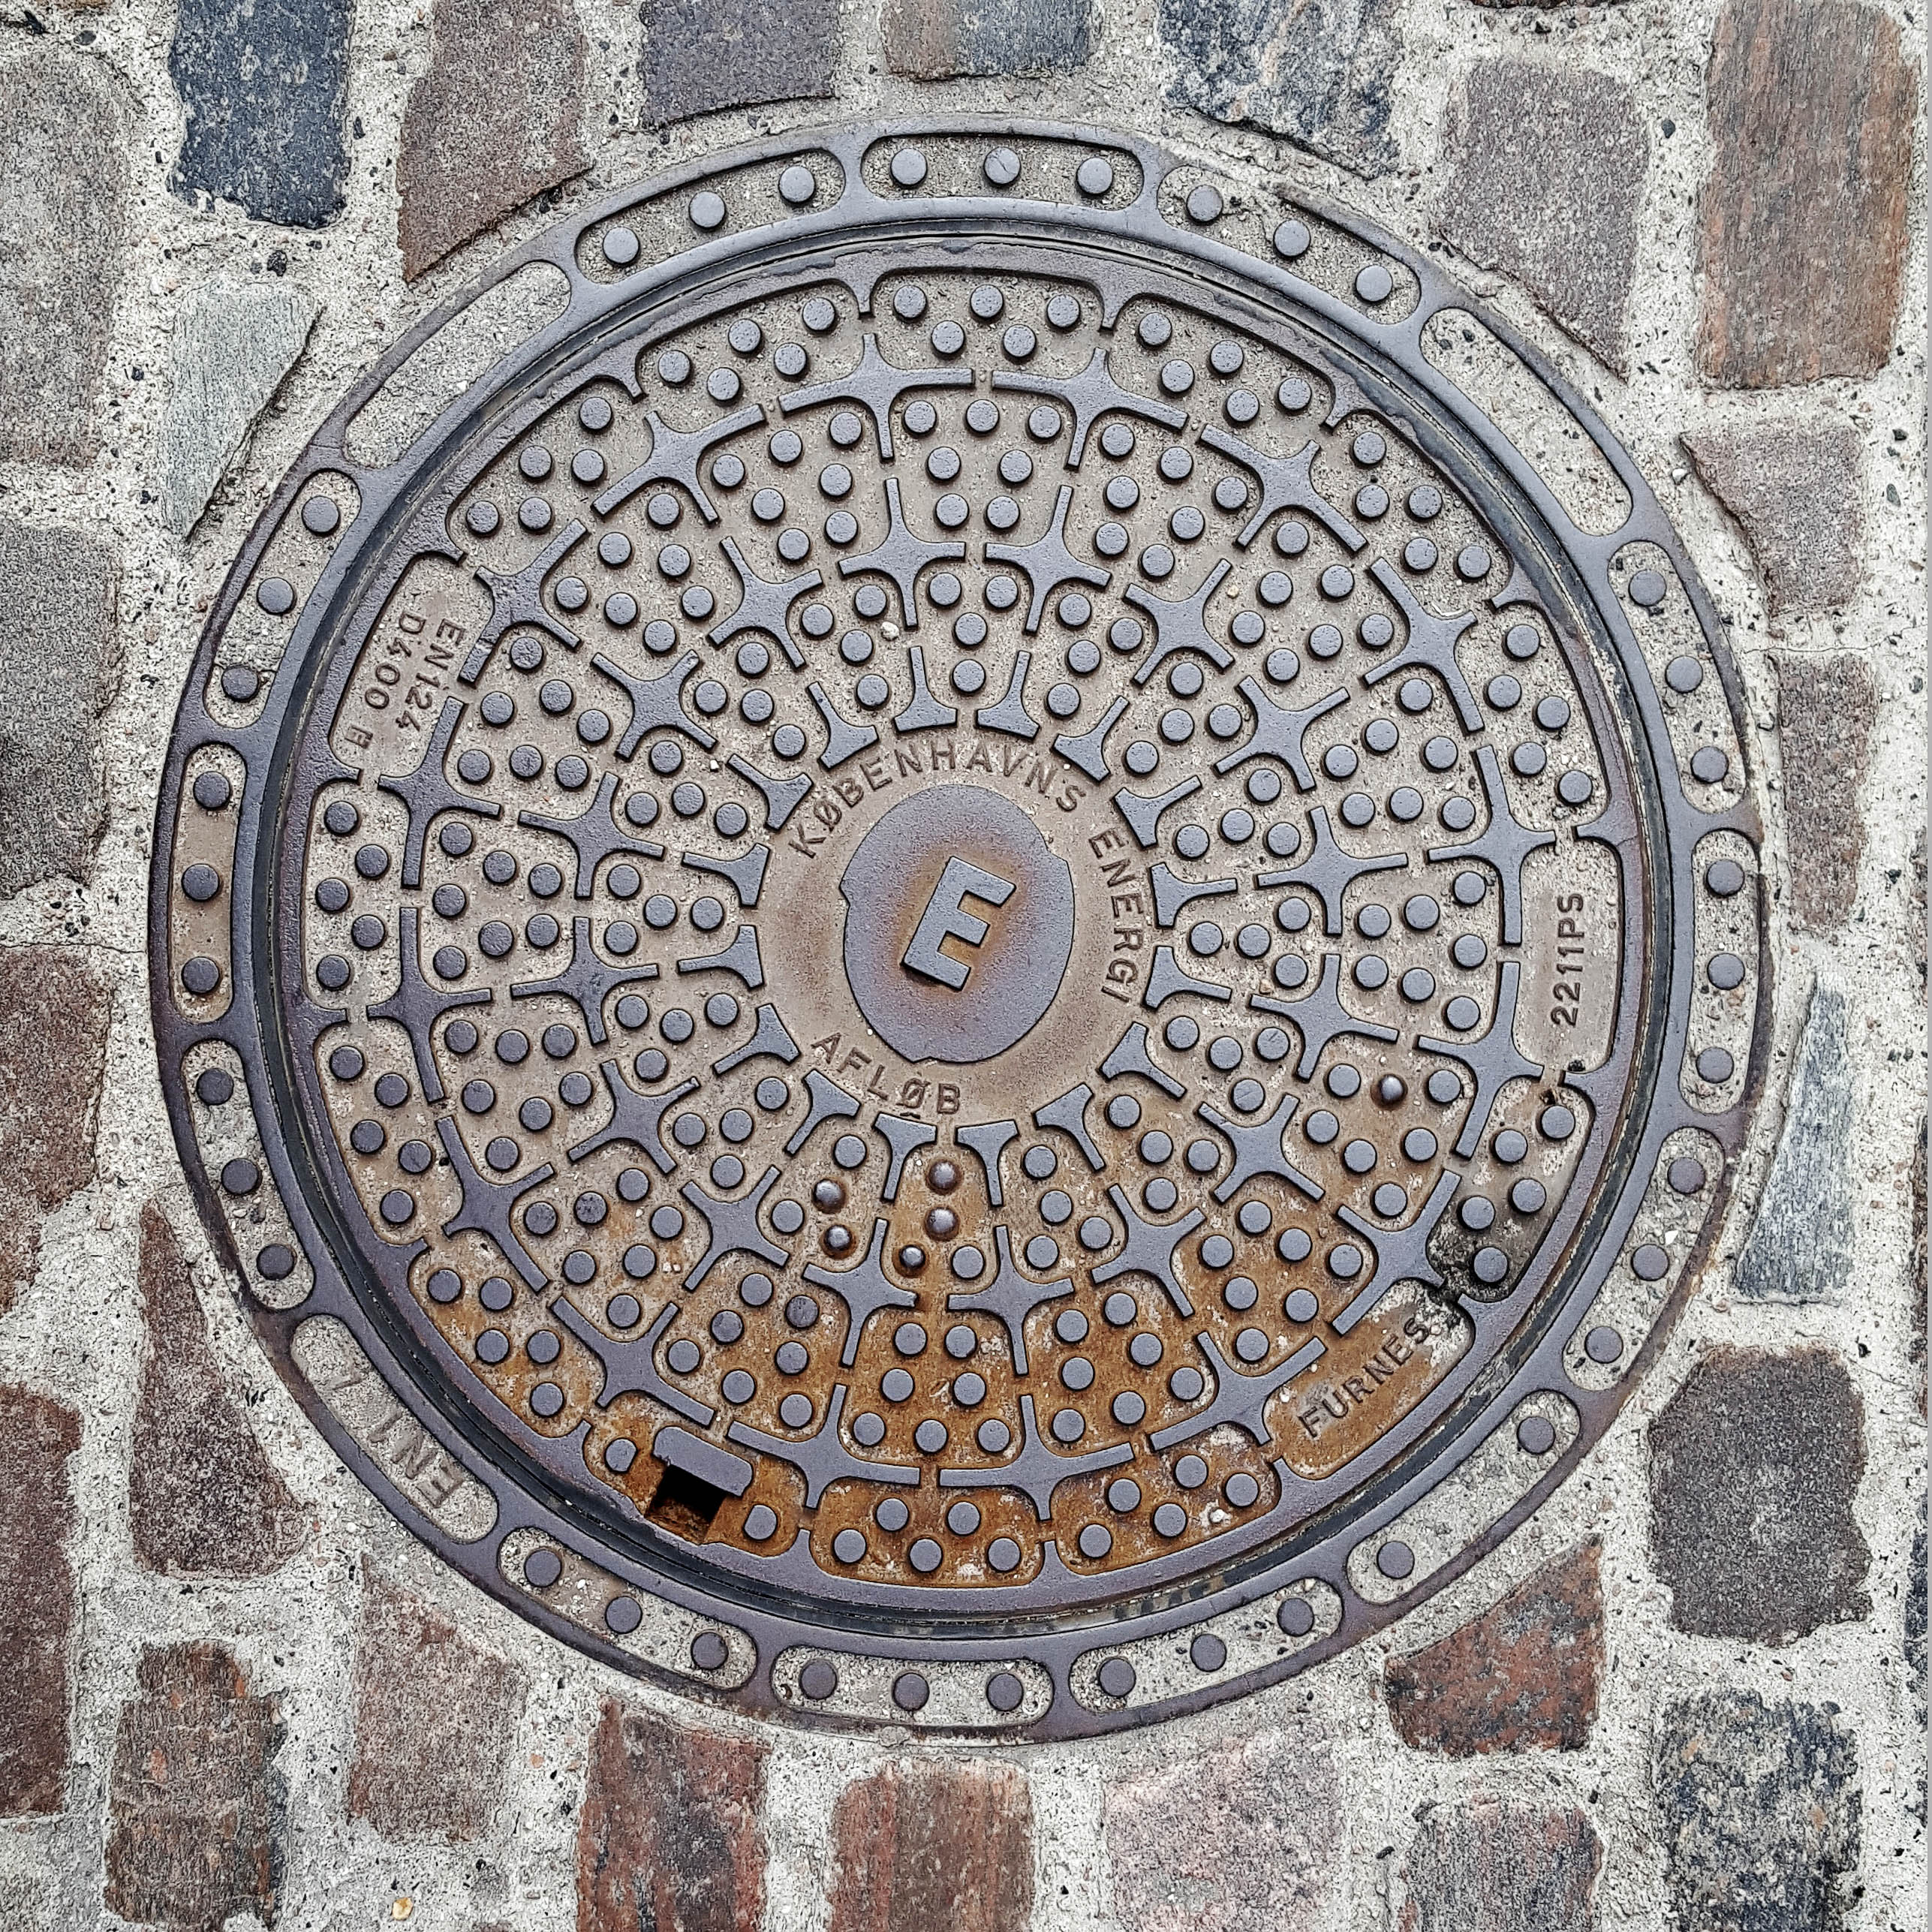 Manhole Cover, Copenhagen - Cast iron with pattern of small raised circles